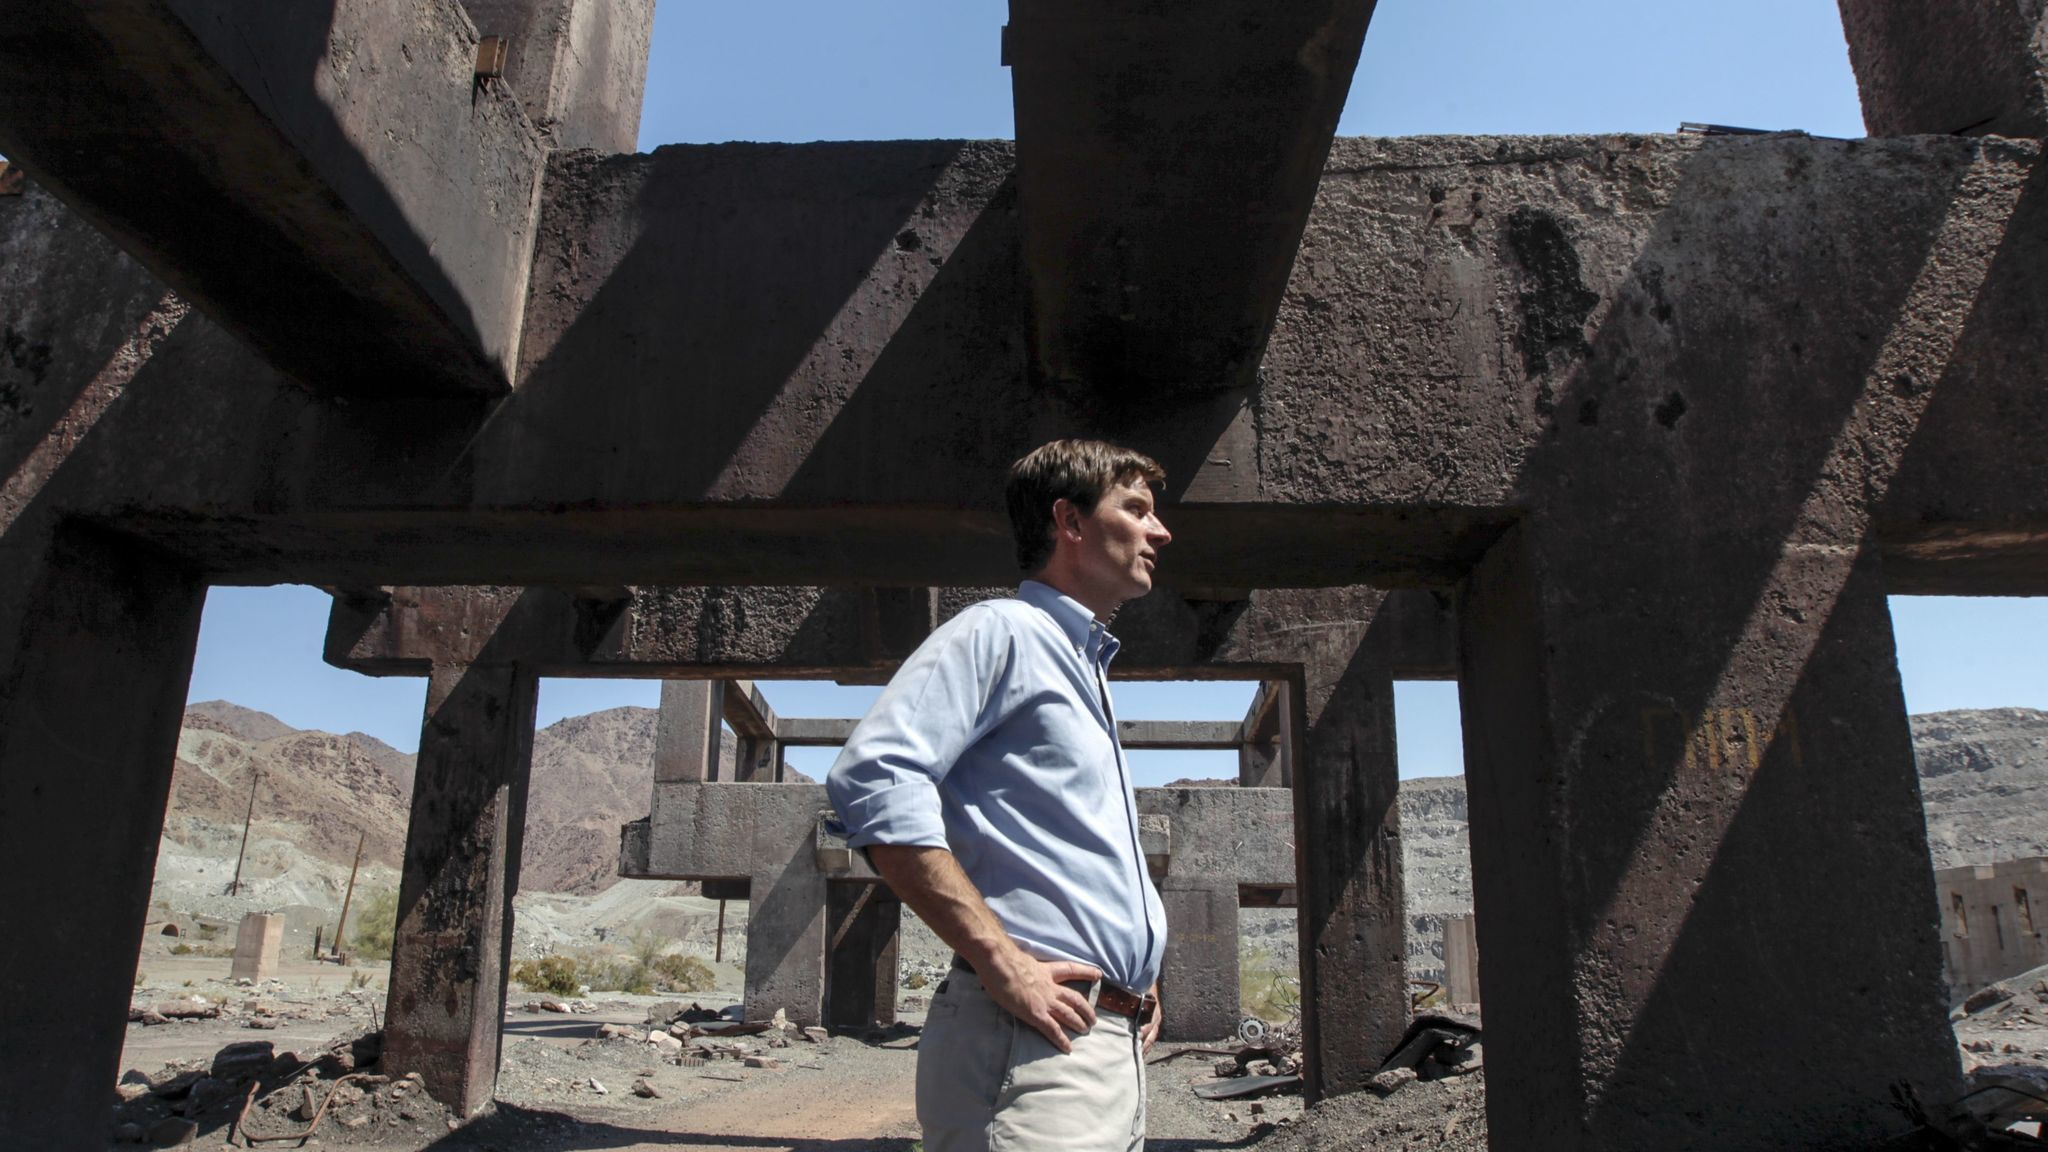 Steve Lowe, president of Eagle Crest Energy Co., stands amid the ruins of the ore loading area.